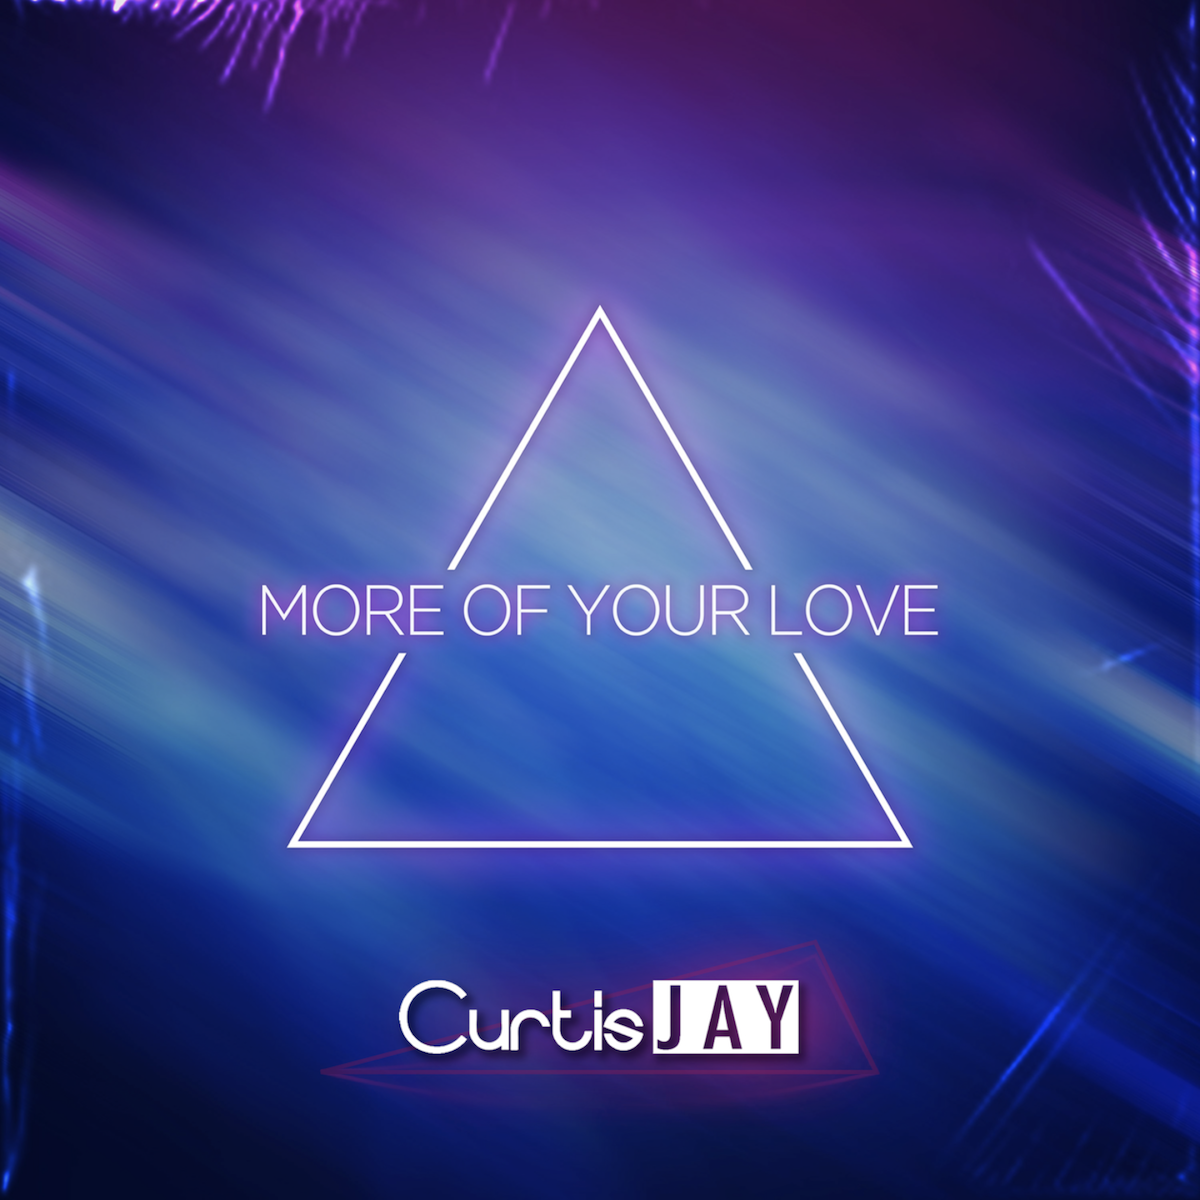 ▲▼ More of Your Love ▼▲  Image